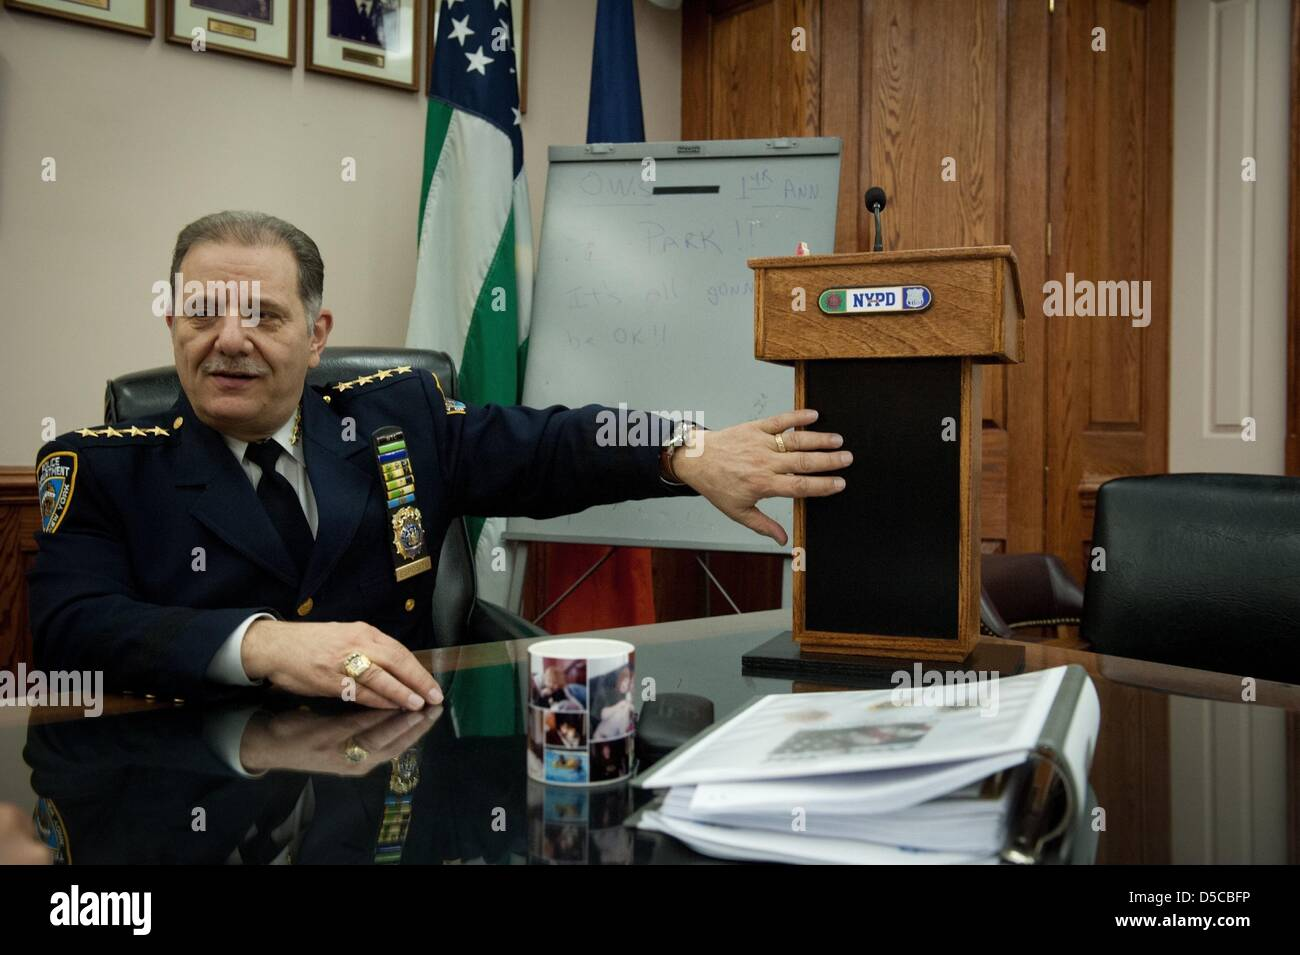 march 22 2013 manhattan new york u s nypd chief of